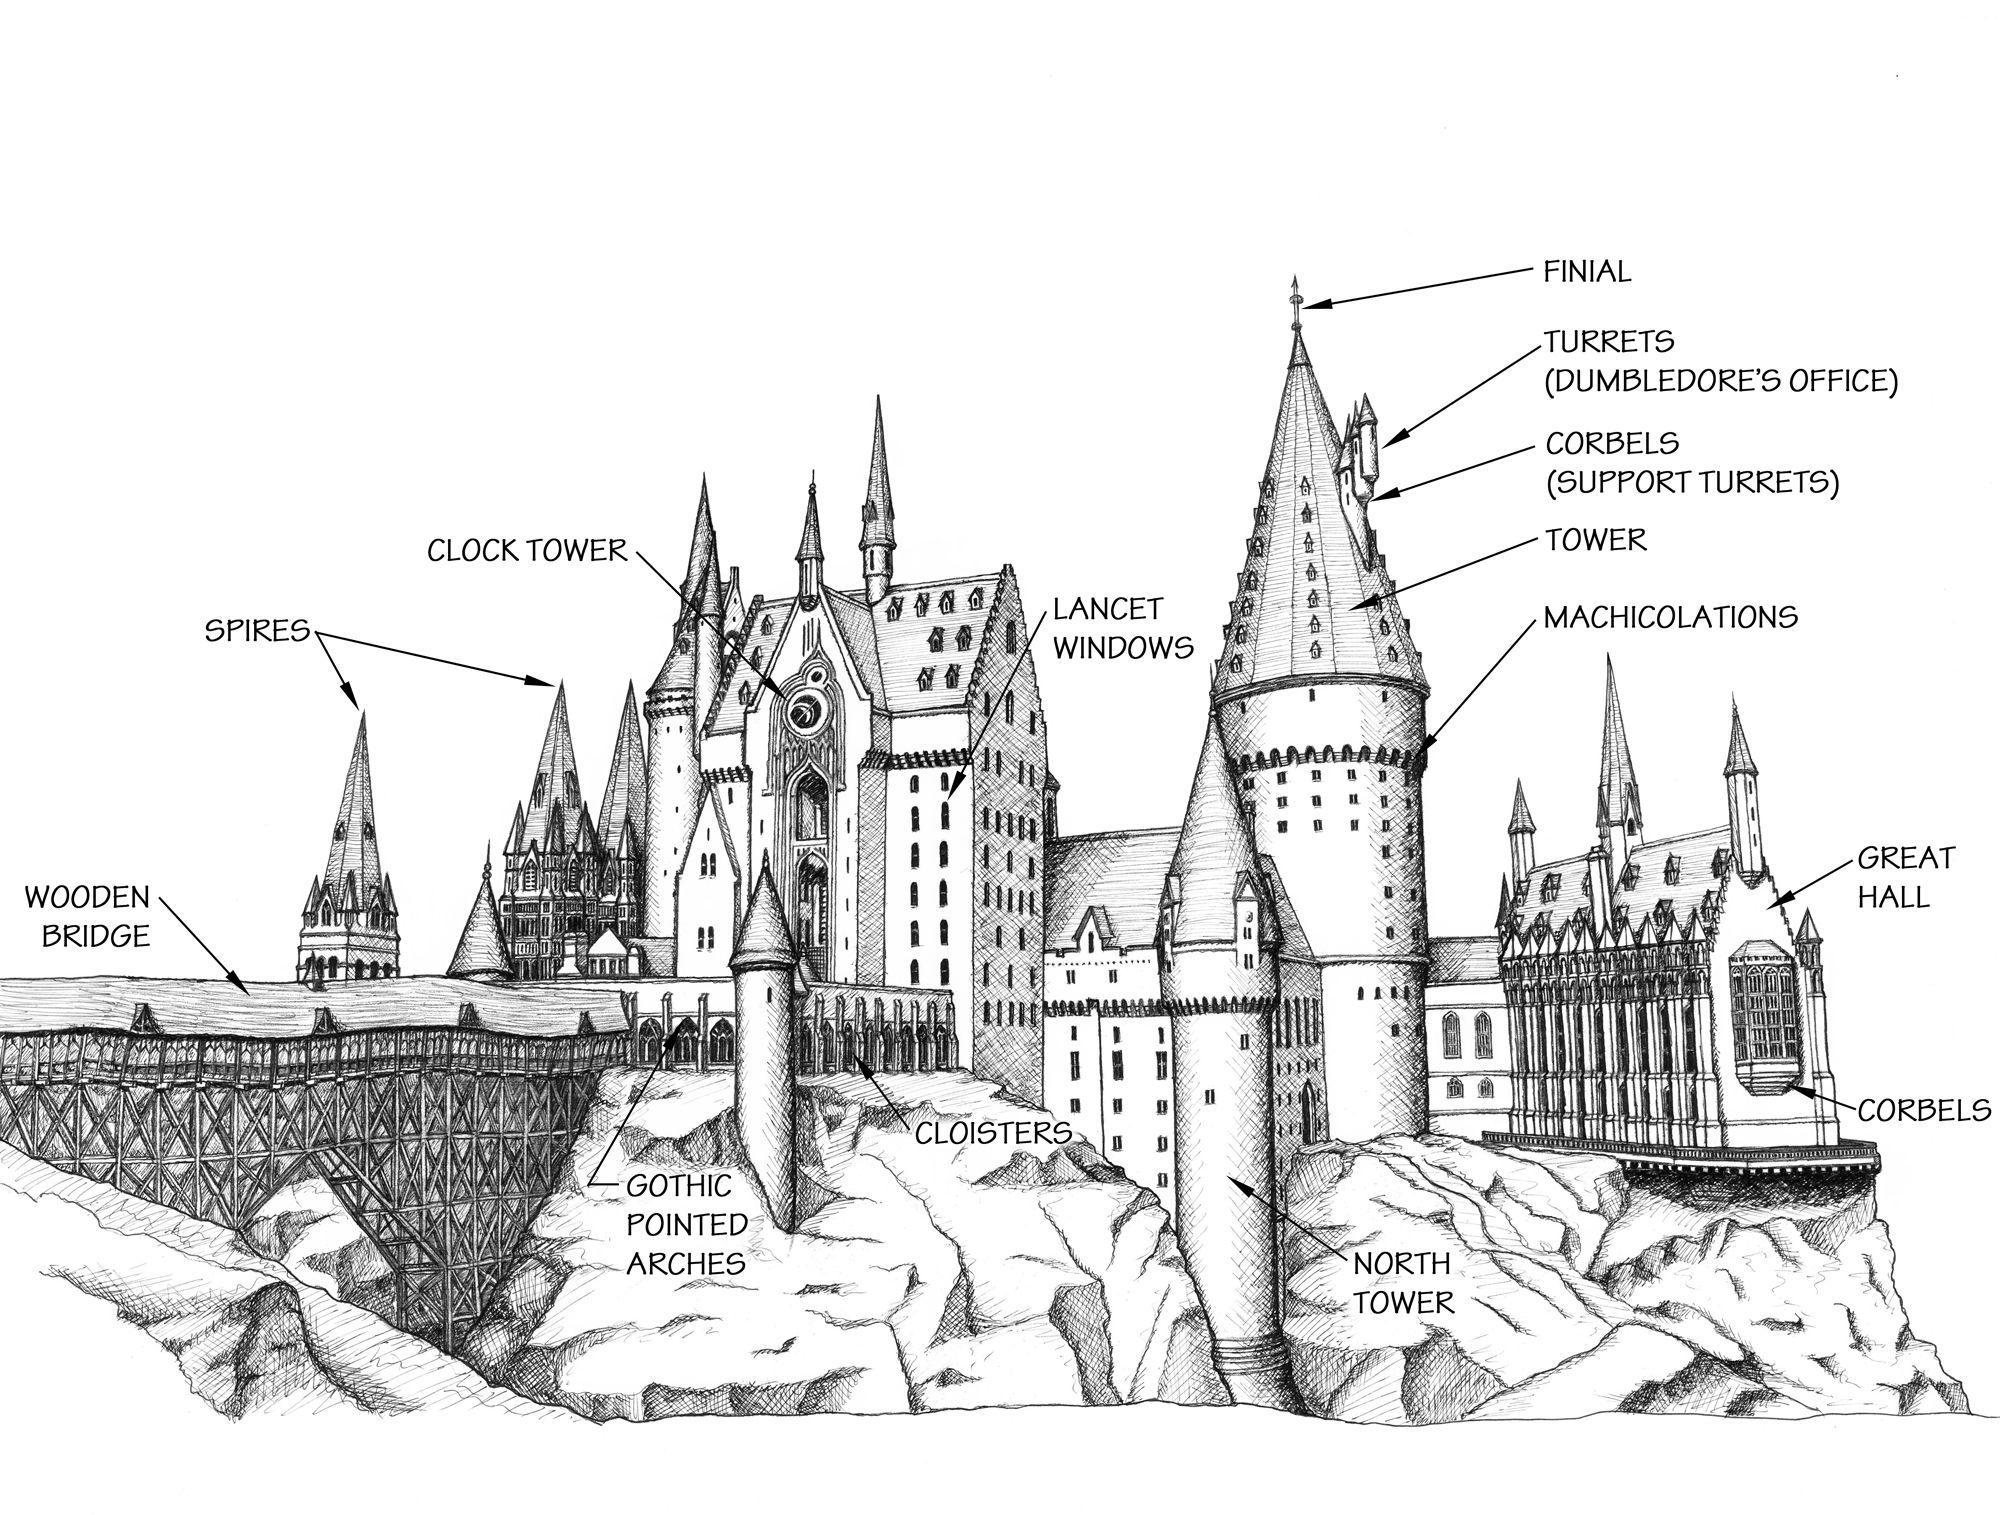 Hogwarts Castle #Gothic architectural terms. The Hogwarts